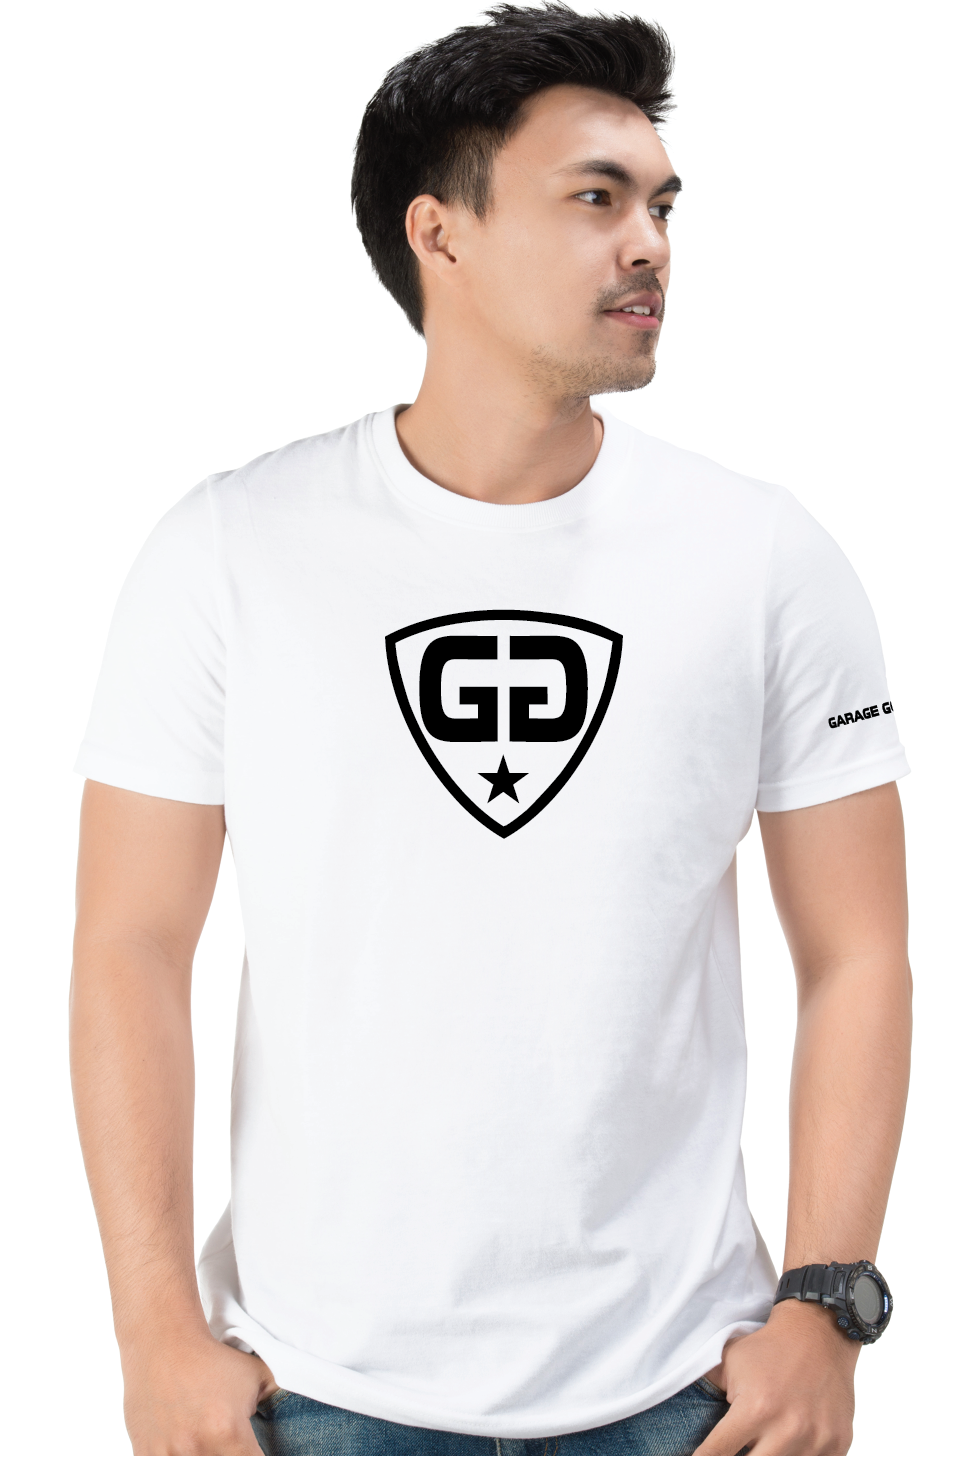 gg center shield white